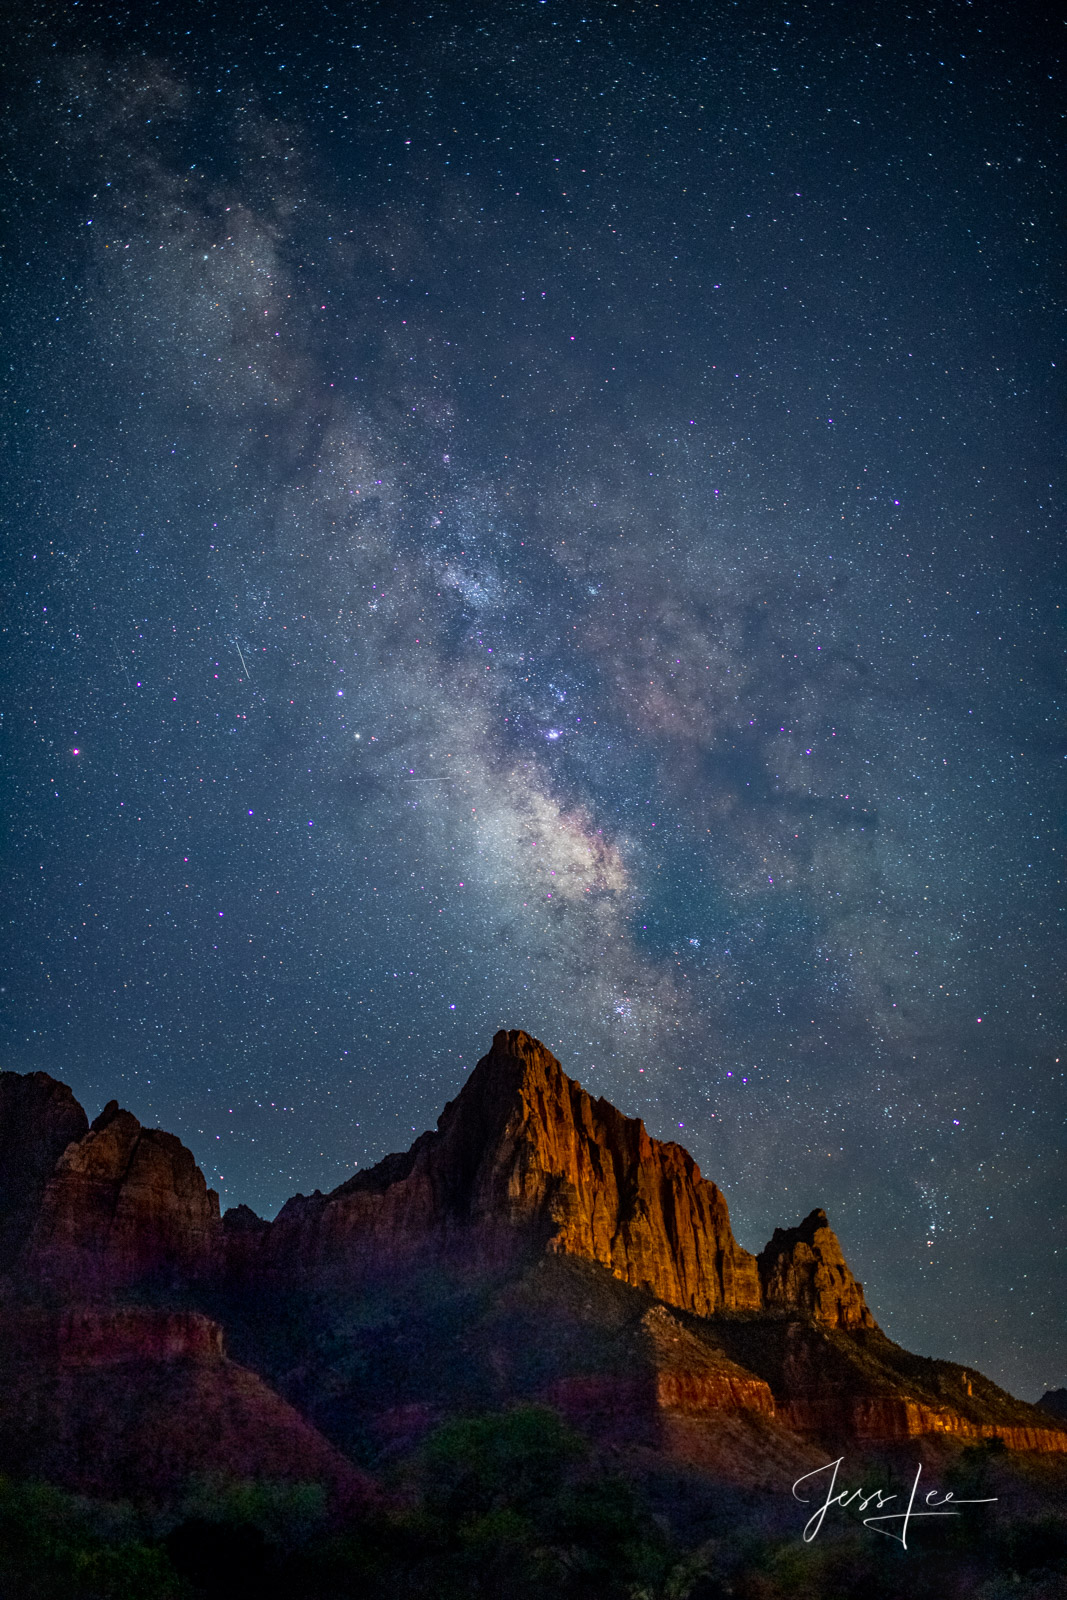 Limited Edition of 50 Exclusive high-resolution Museum Quality Fine Art Prints of the Zion Night Sky. Photos copyright © Jess...